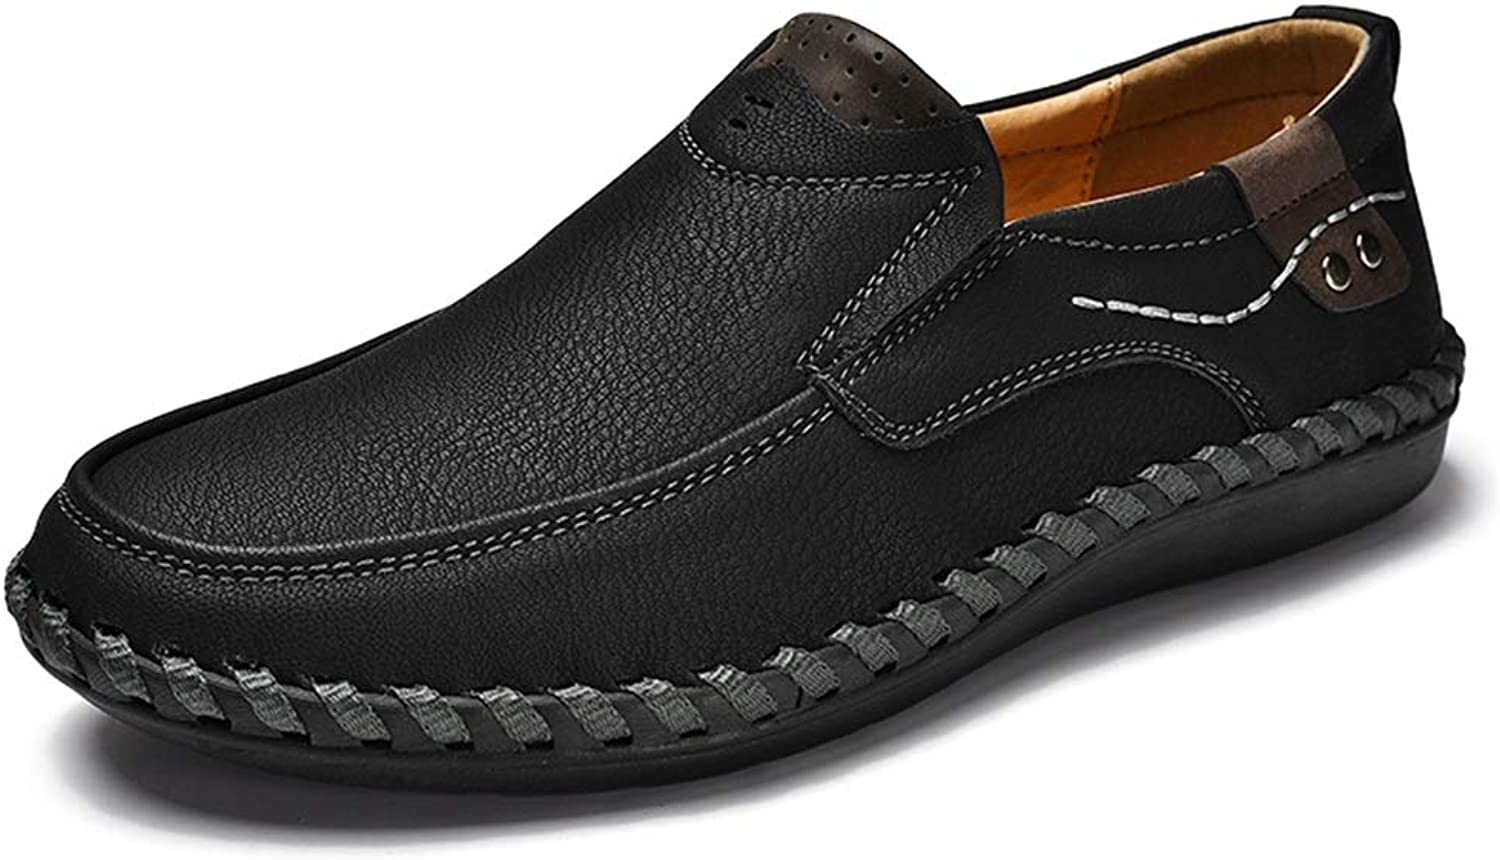 Lightweight Breathable Loafers for Men Microfiber Leather Anti-Slip Flat Casual shoes Lined Slip-on Round Toe Cricket shoes